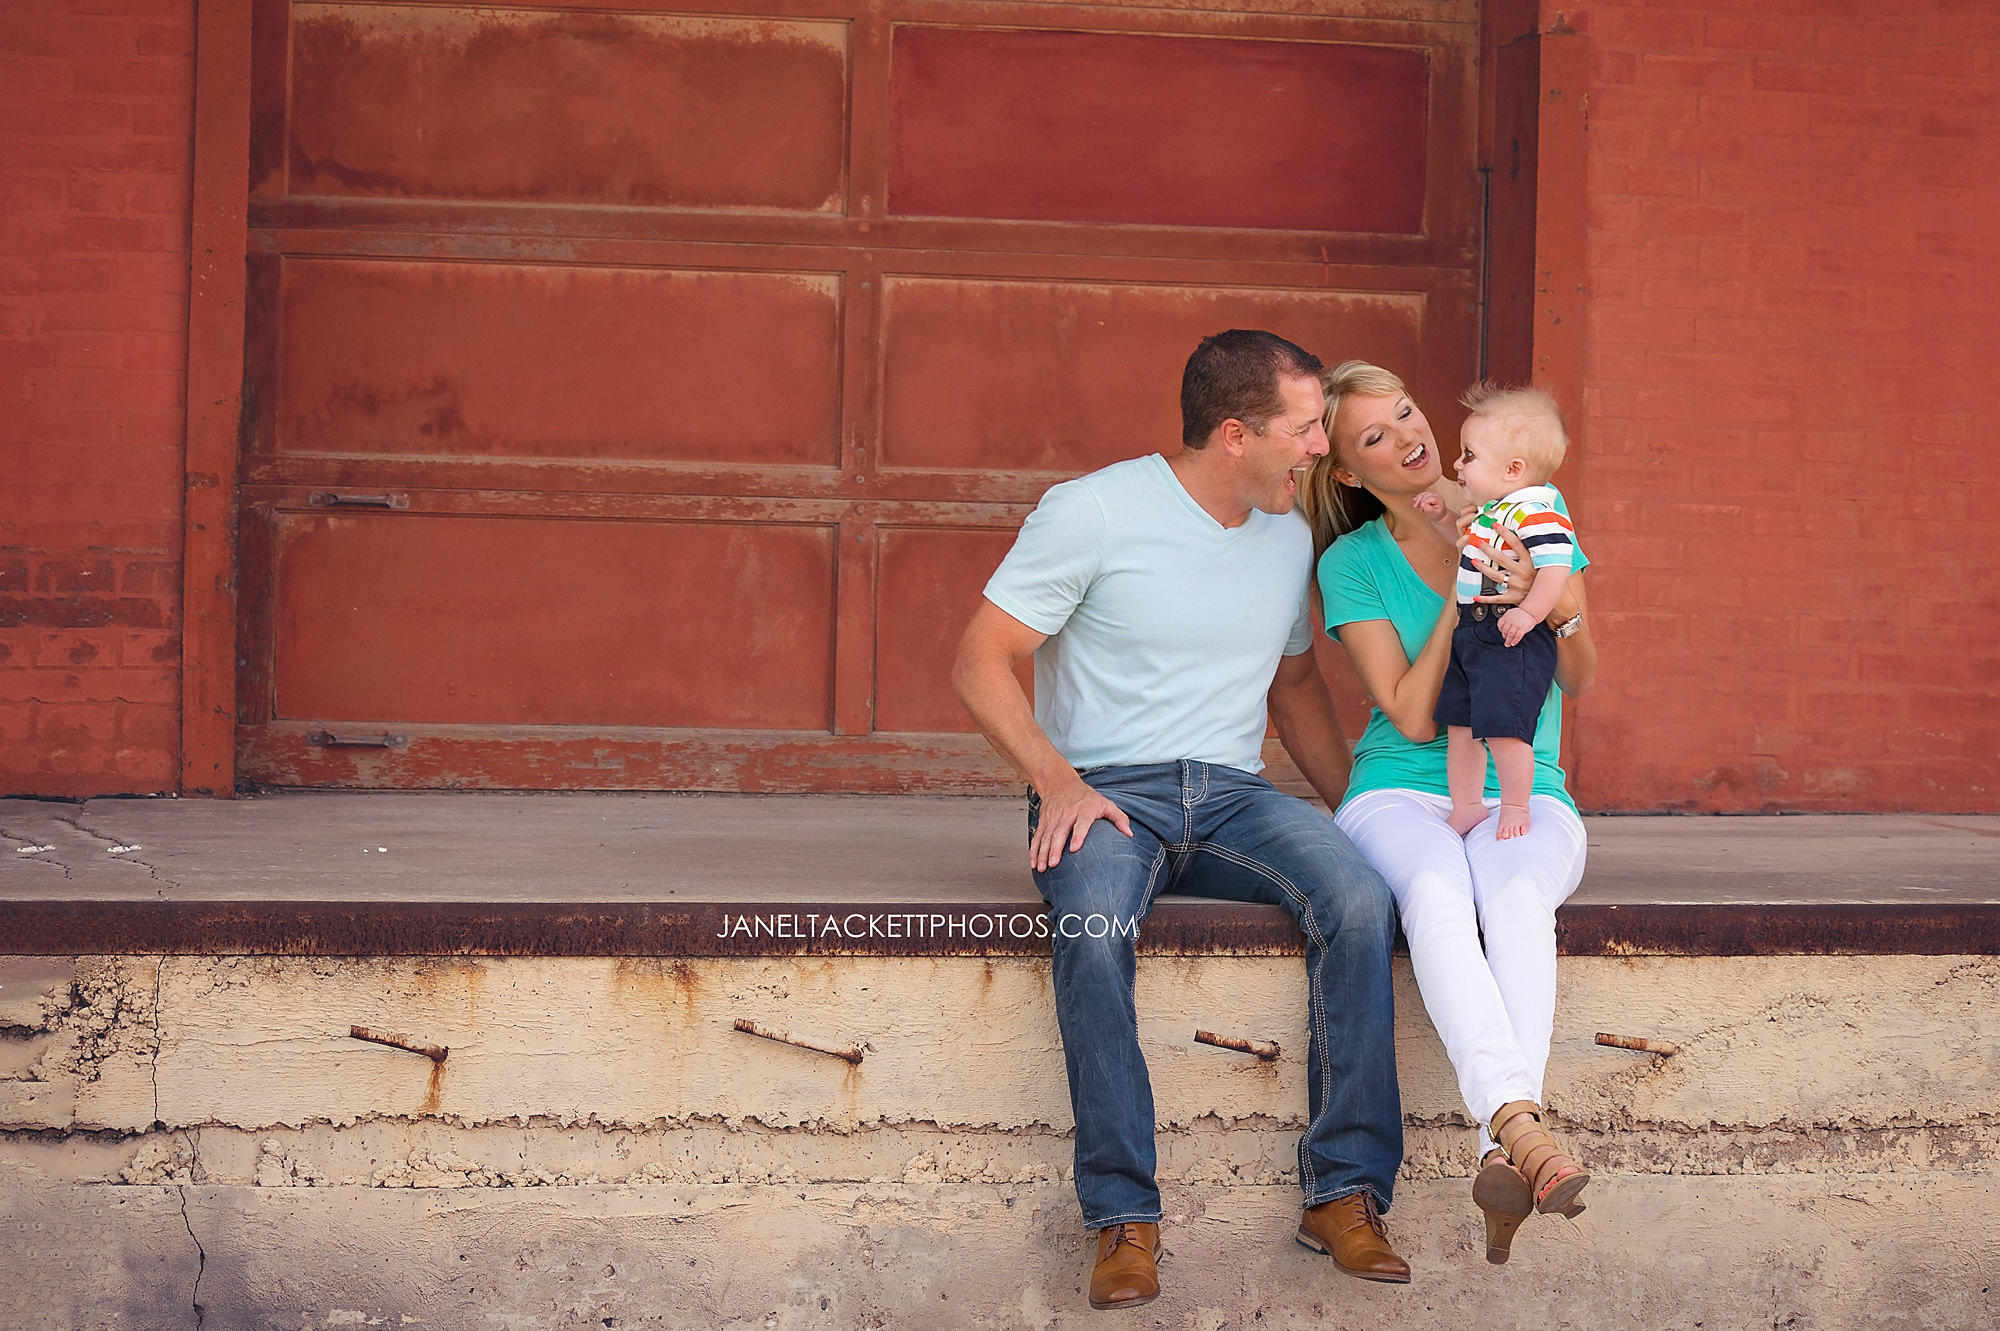 Downtown Tulsa, Oklahoma Family photos